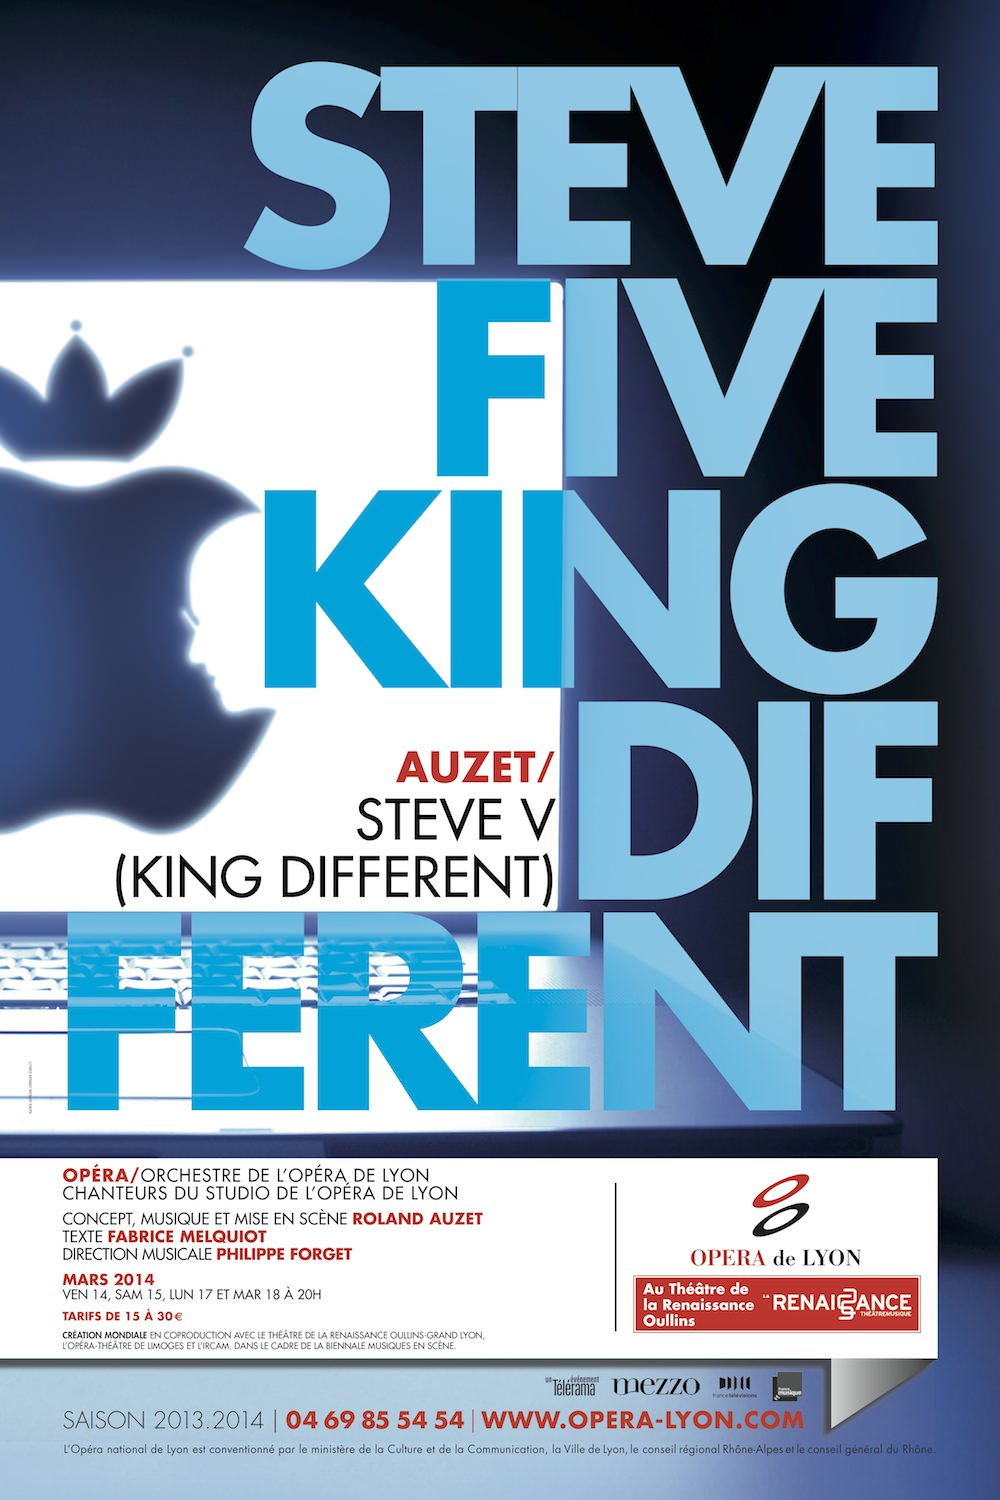 Steve five king different auzet